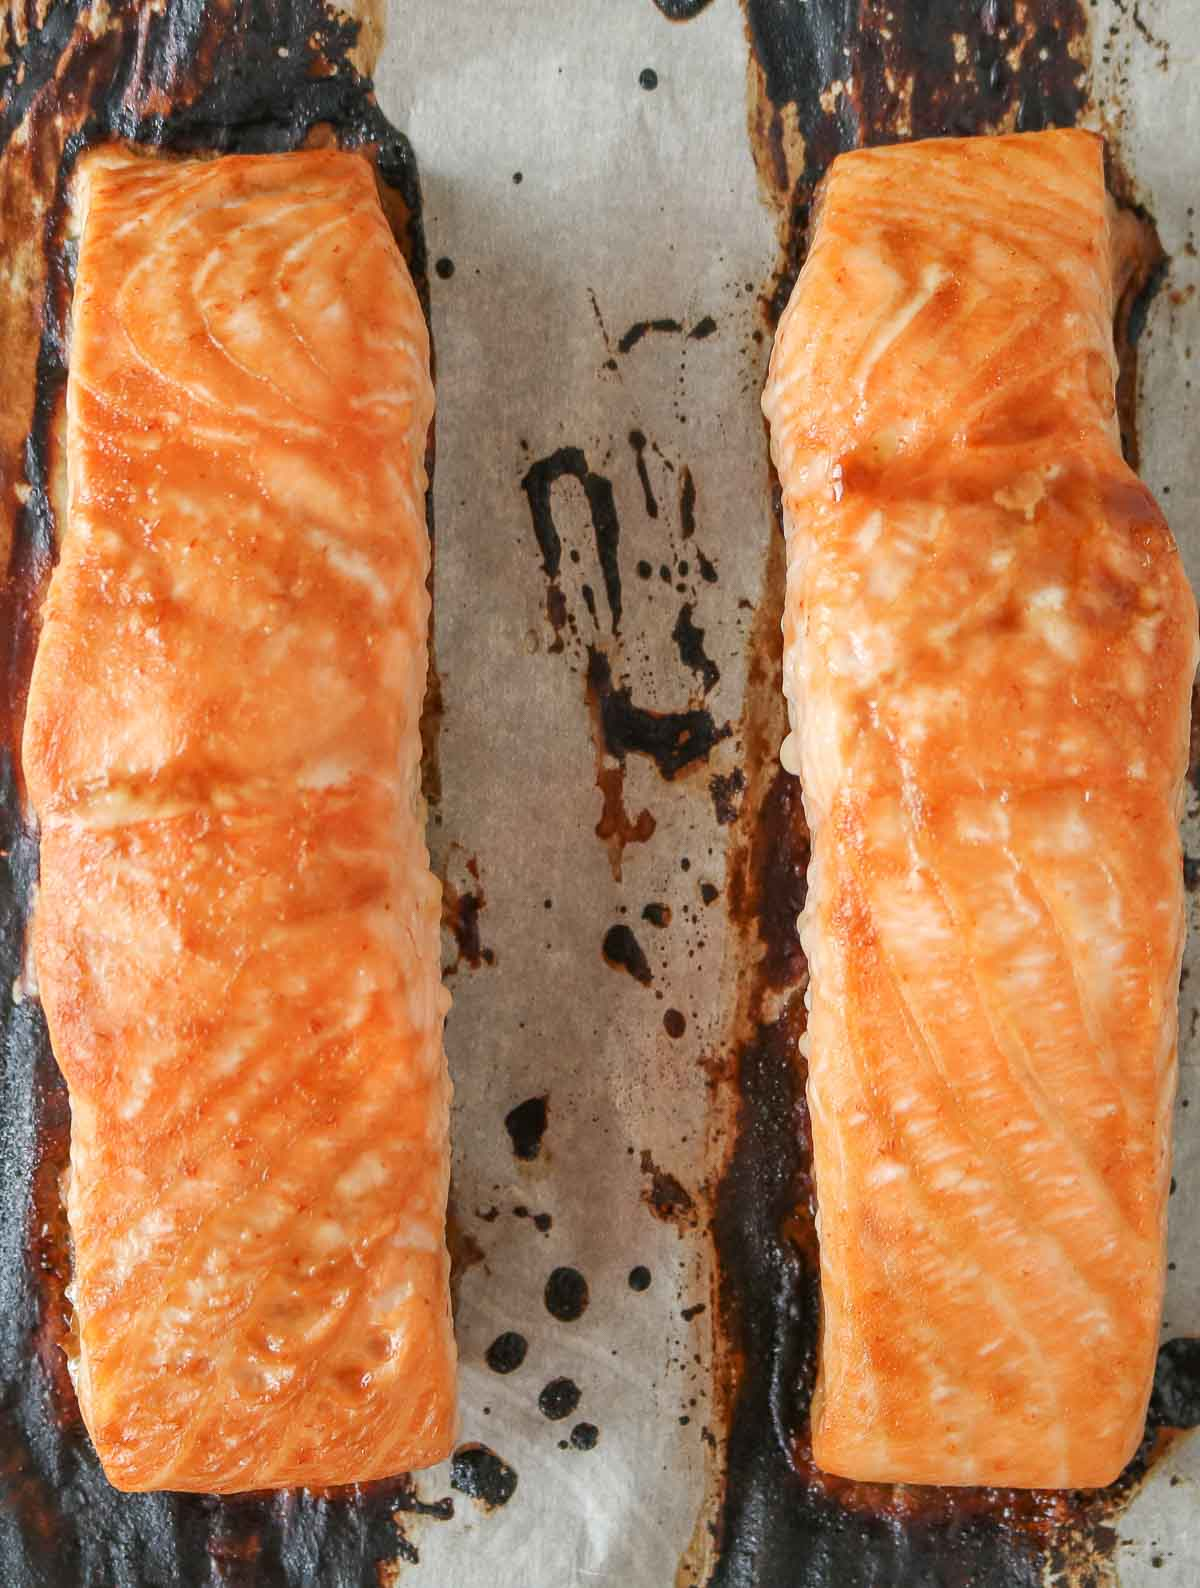 Two glazed salmon fillets after baking.